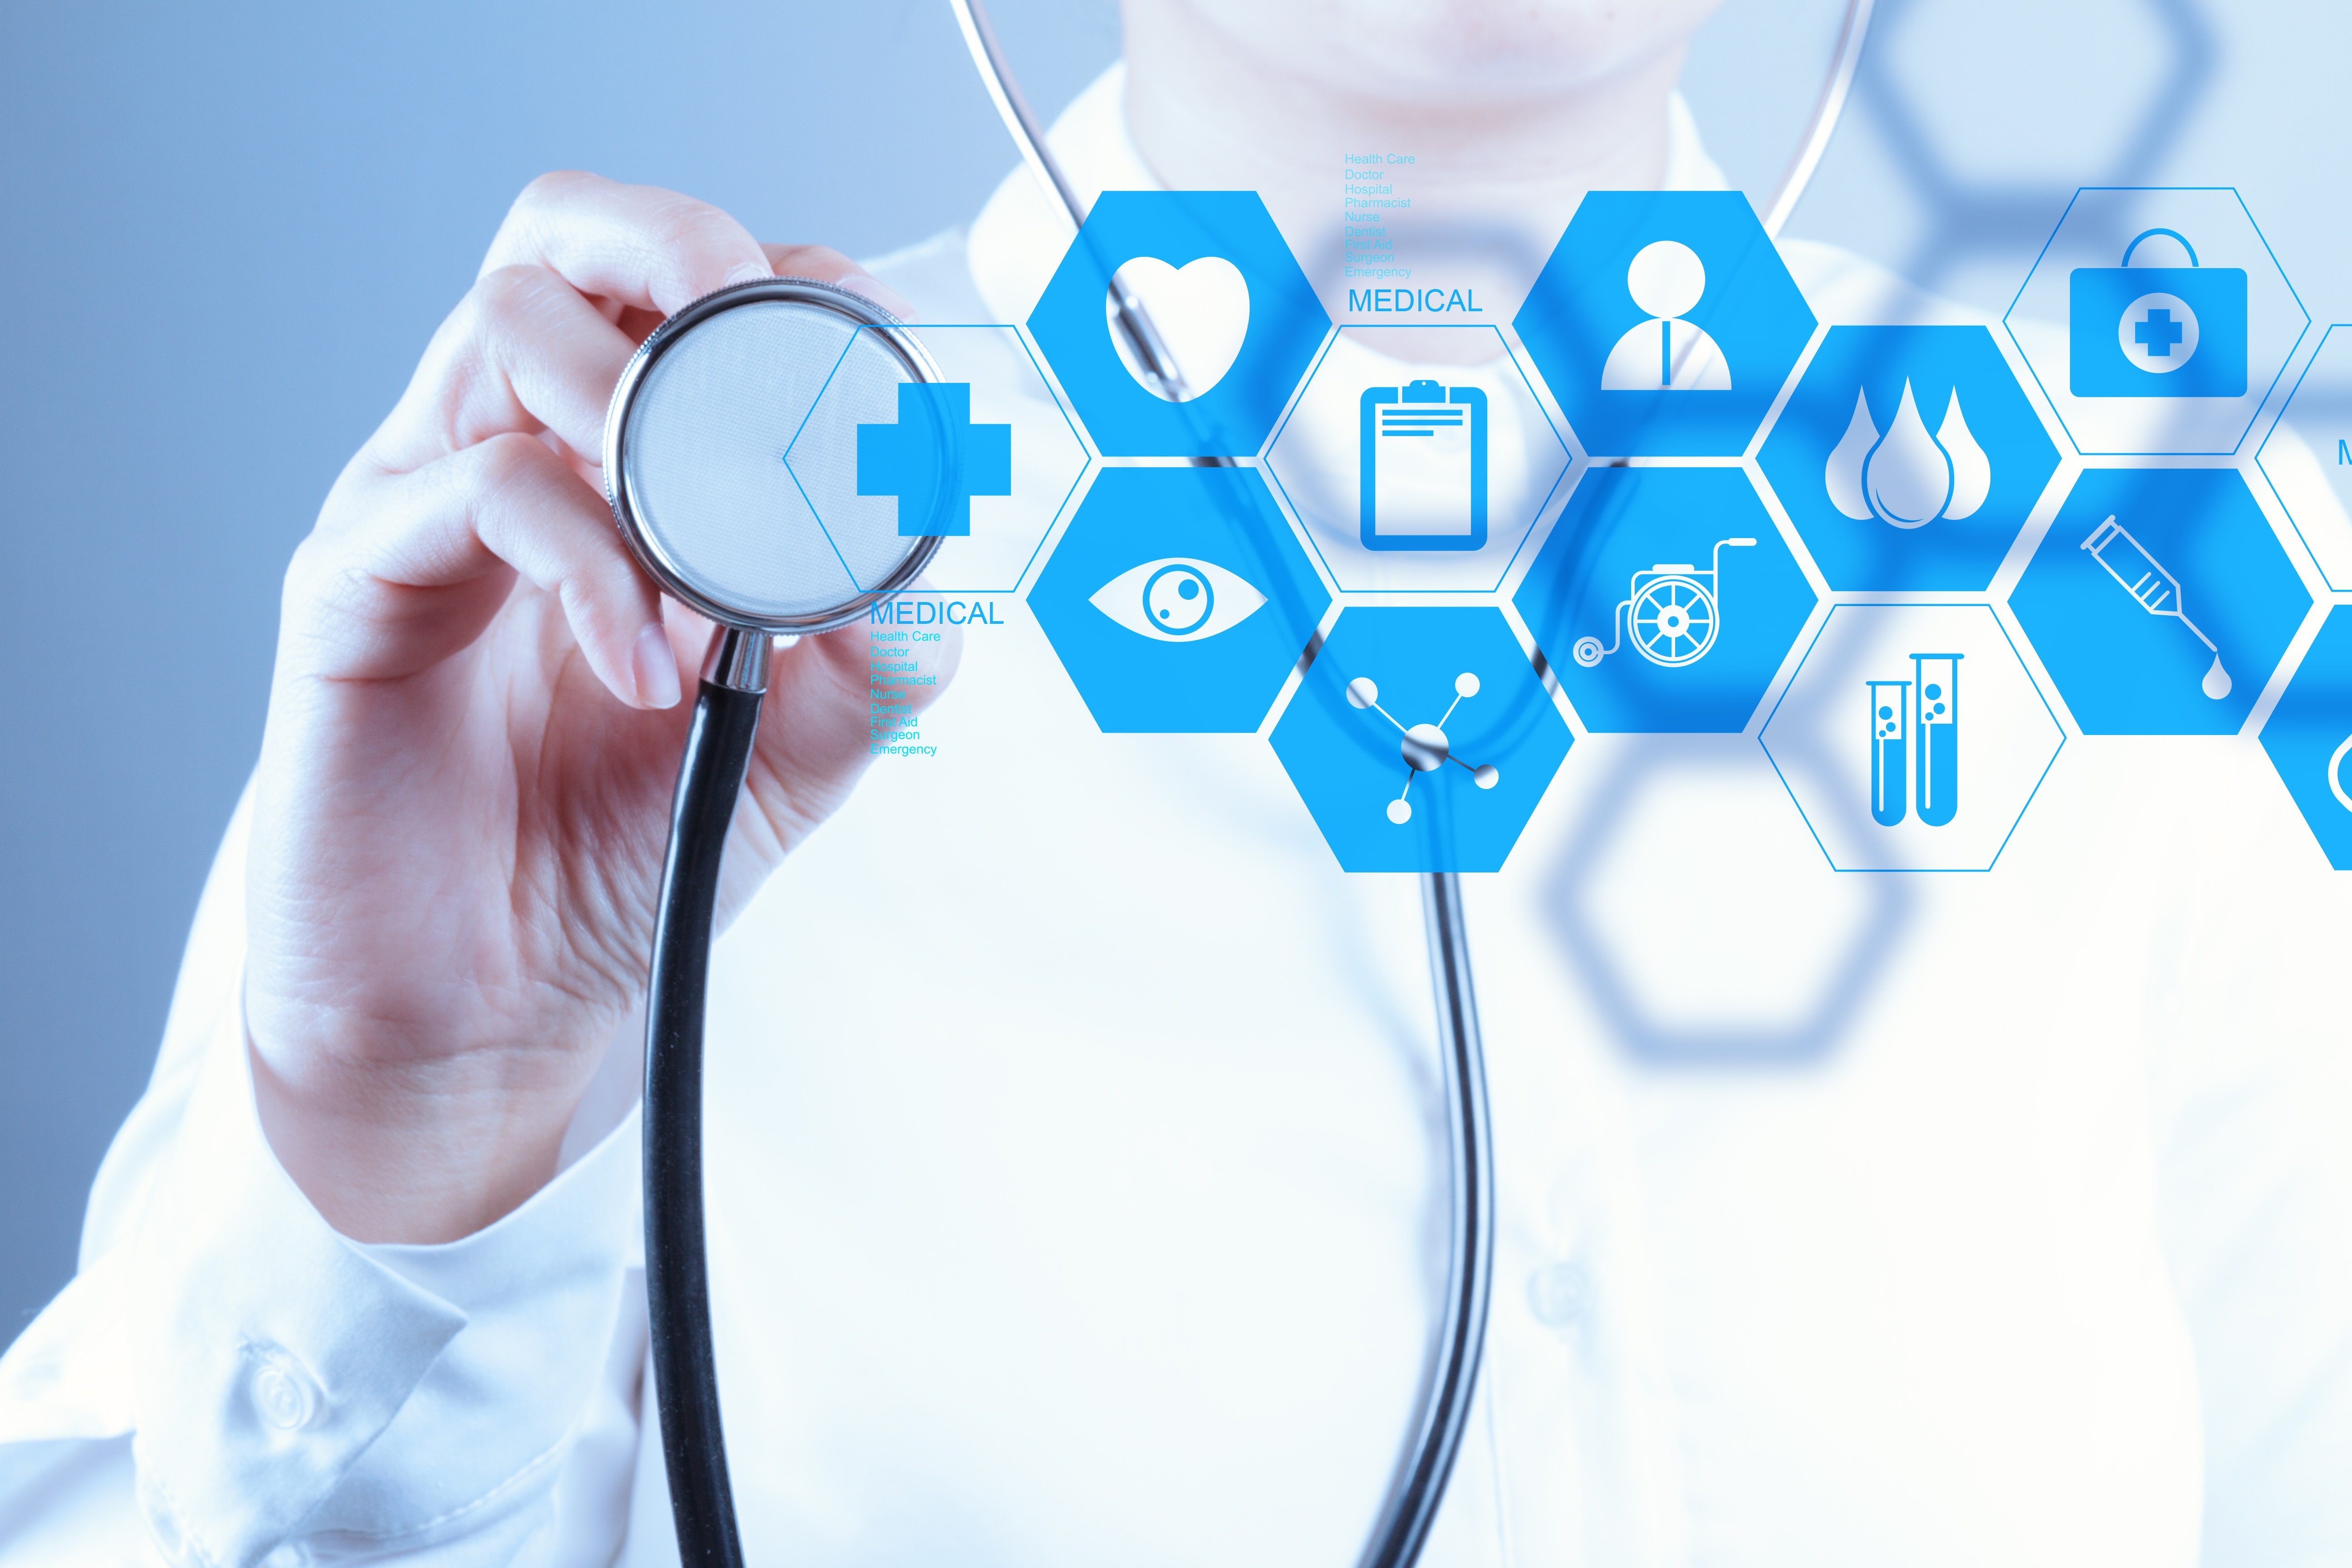 Big Data in health care